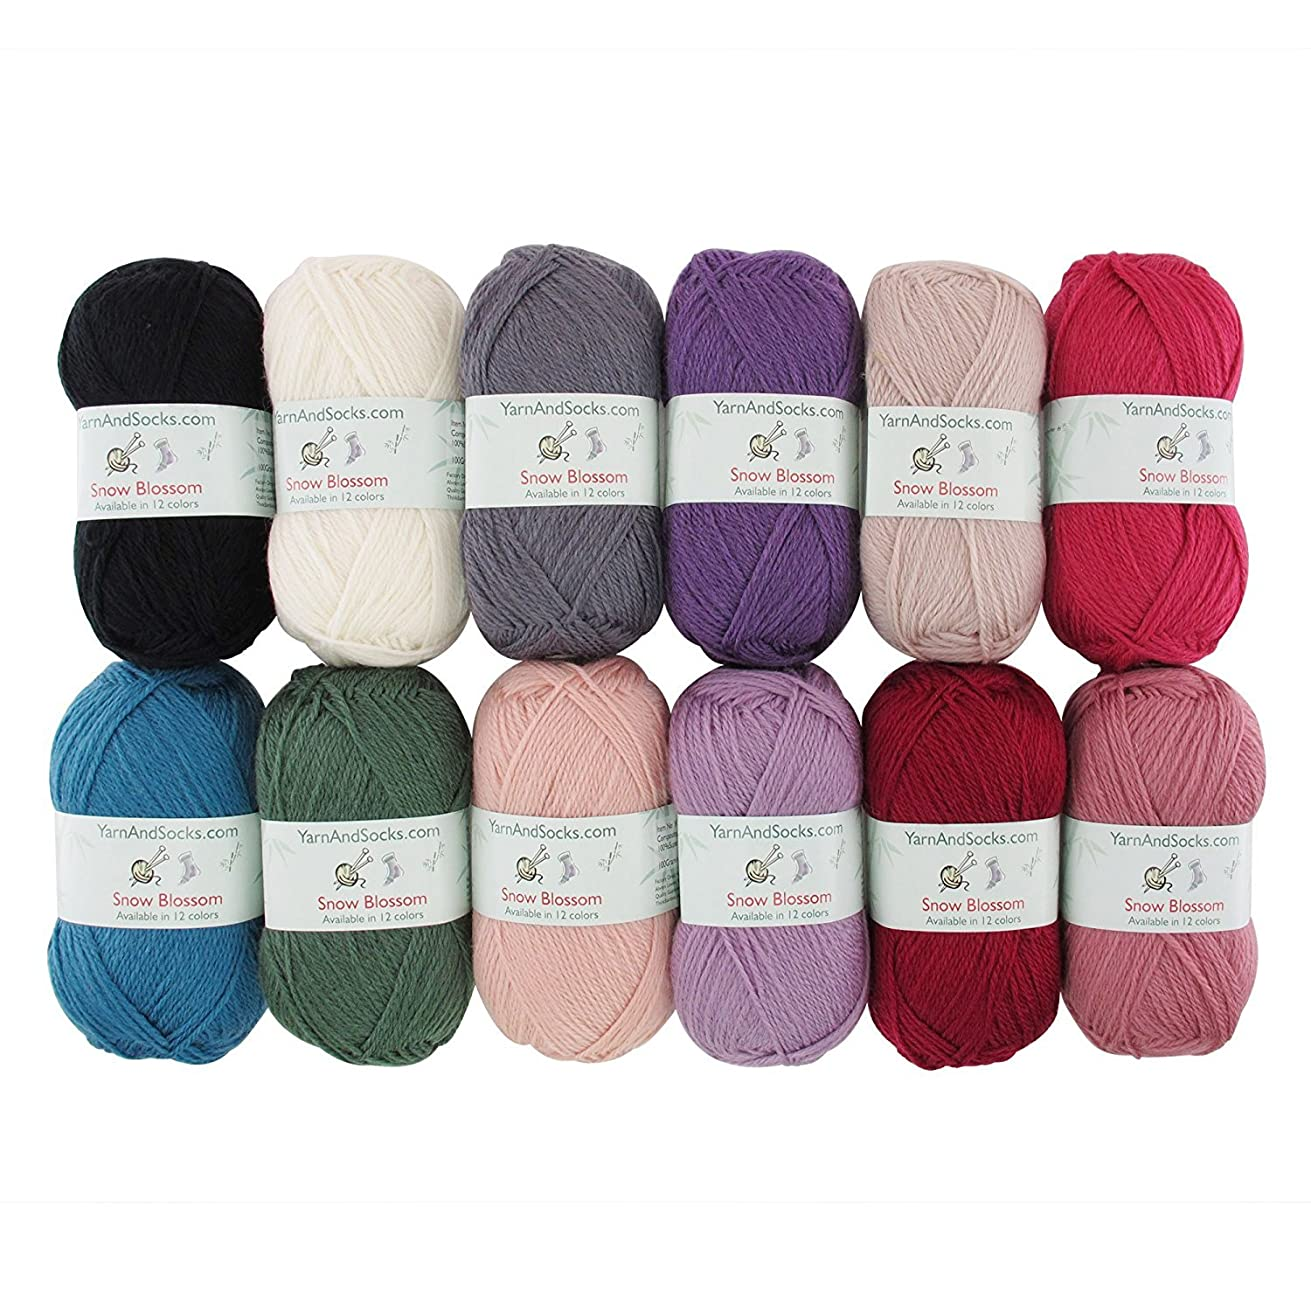 Snow Blossom - Wool Worsted Weight Yarn - 4 Skein Assorted Color Surprise Package